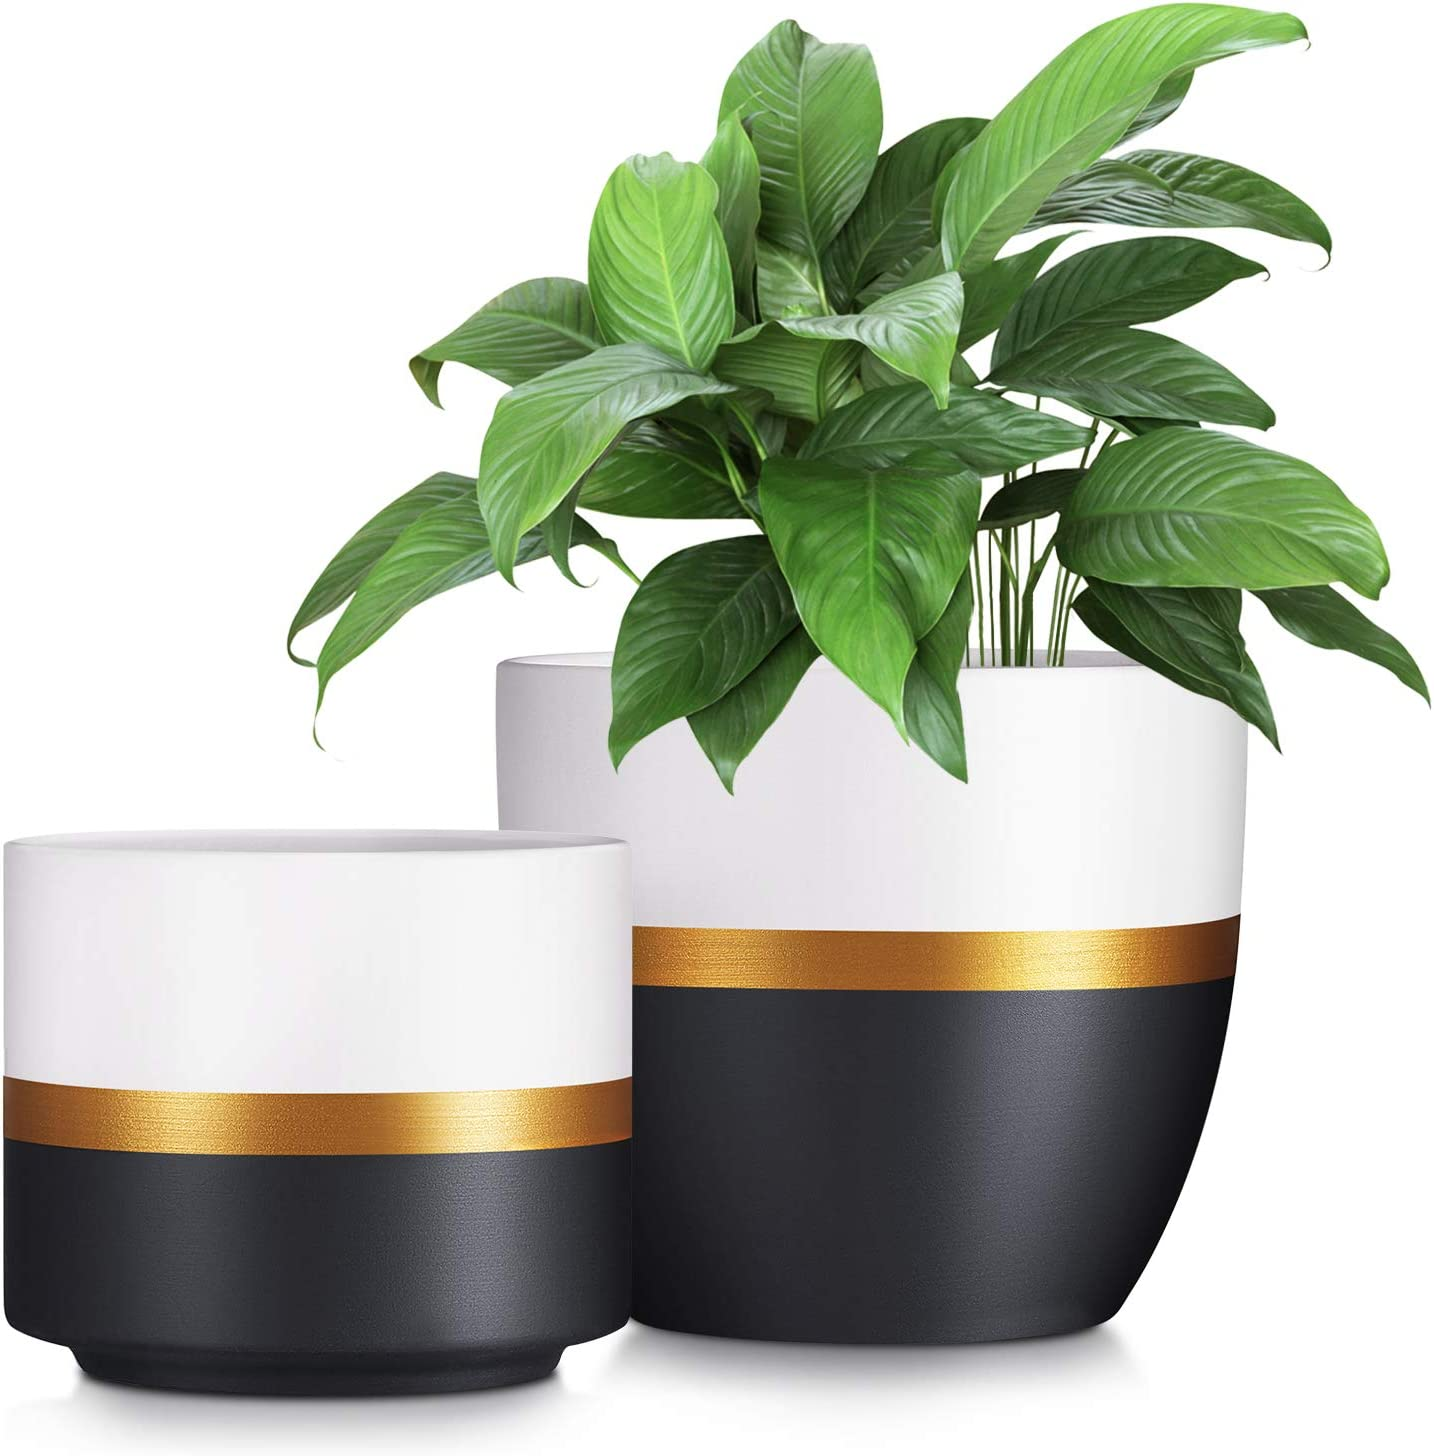 All items in the store Ceramic Plant Pots Planters Indoor Holes with Minneapolis Mall for Drainage